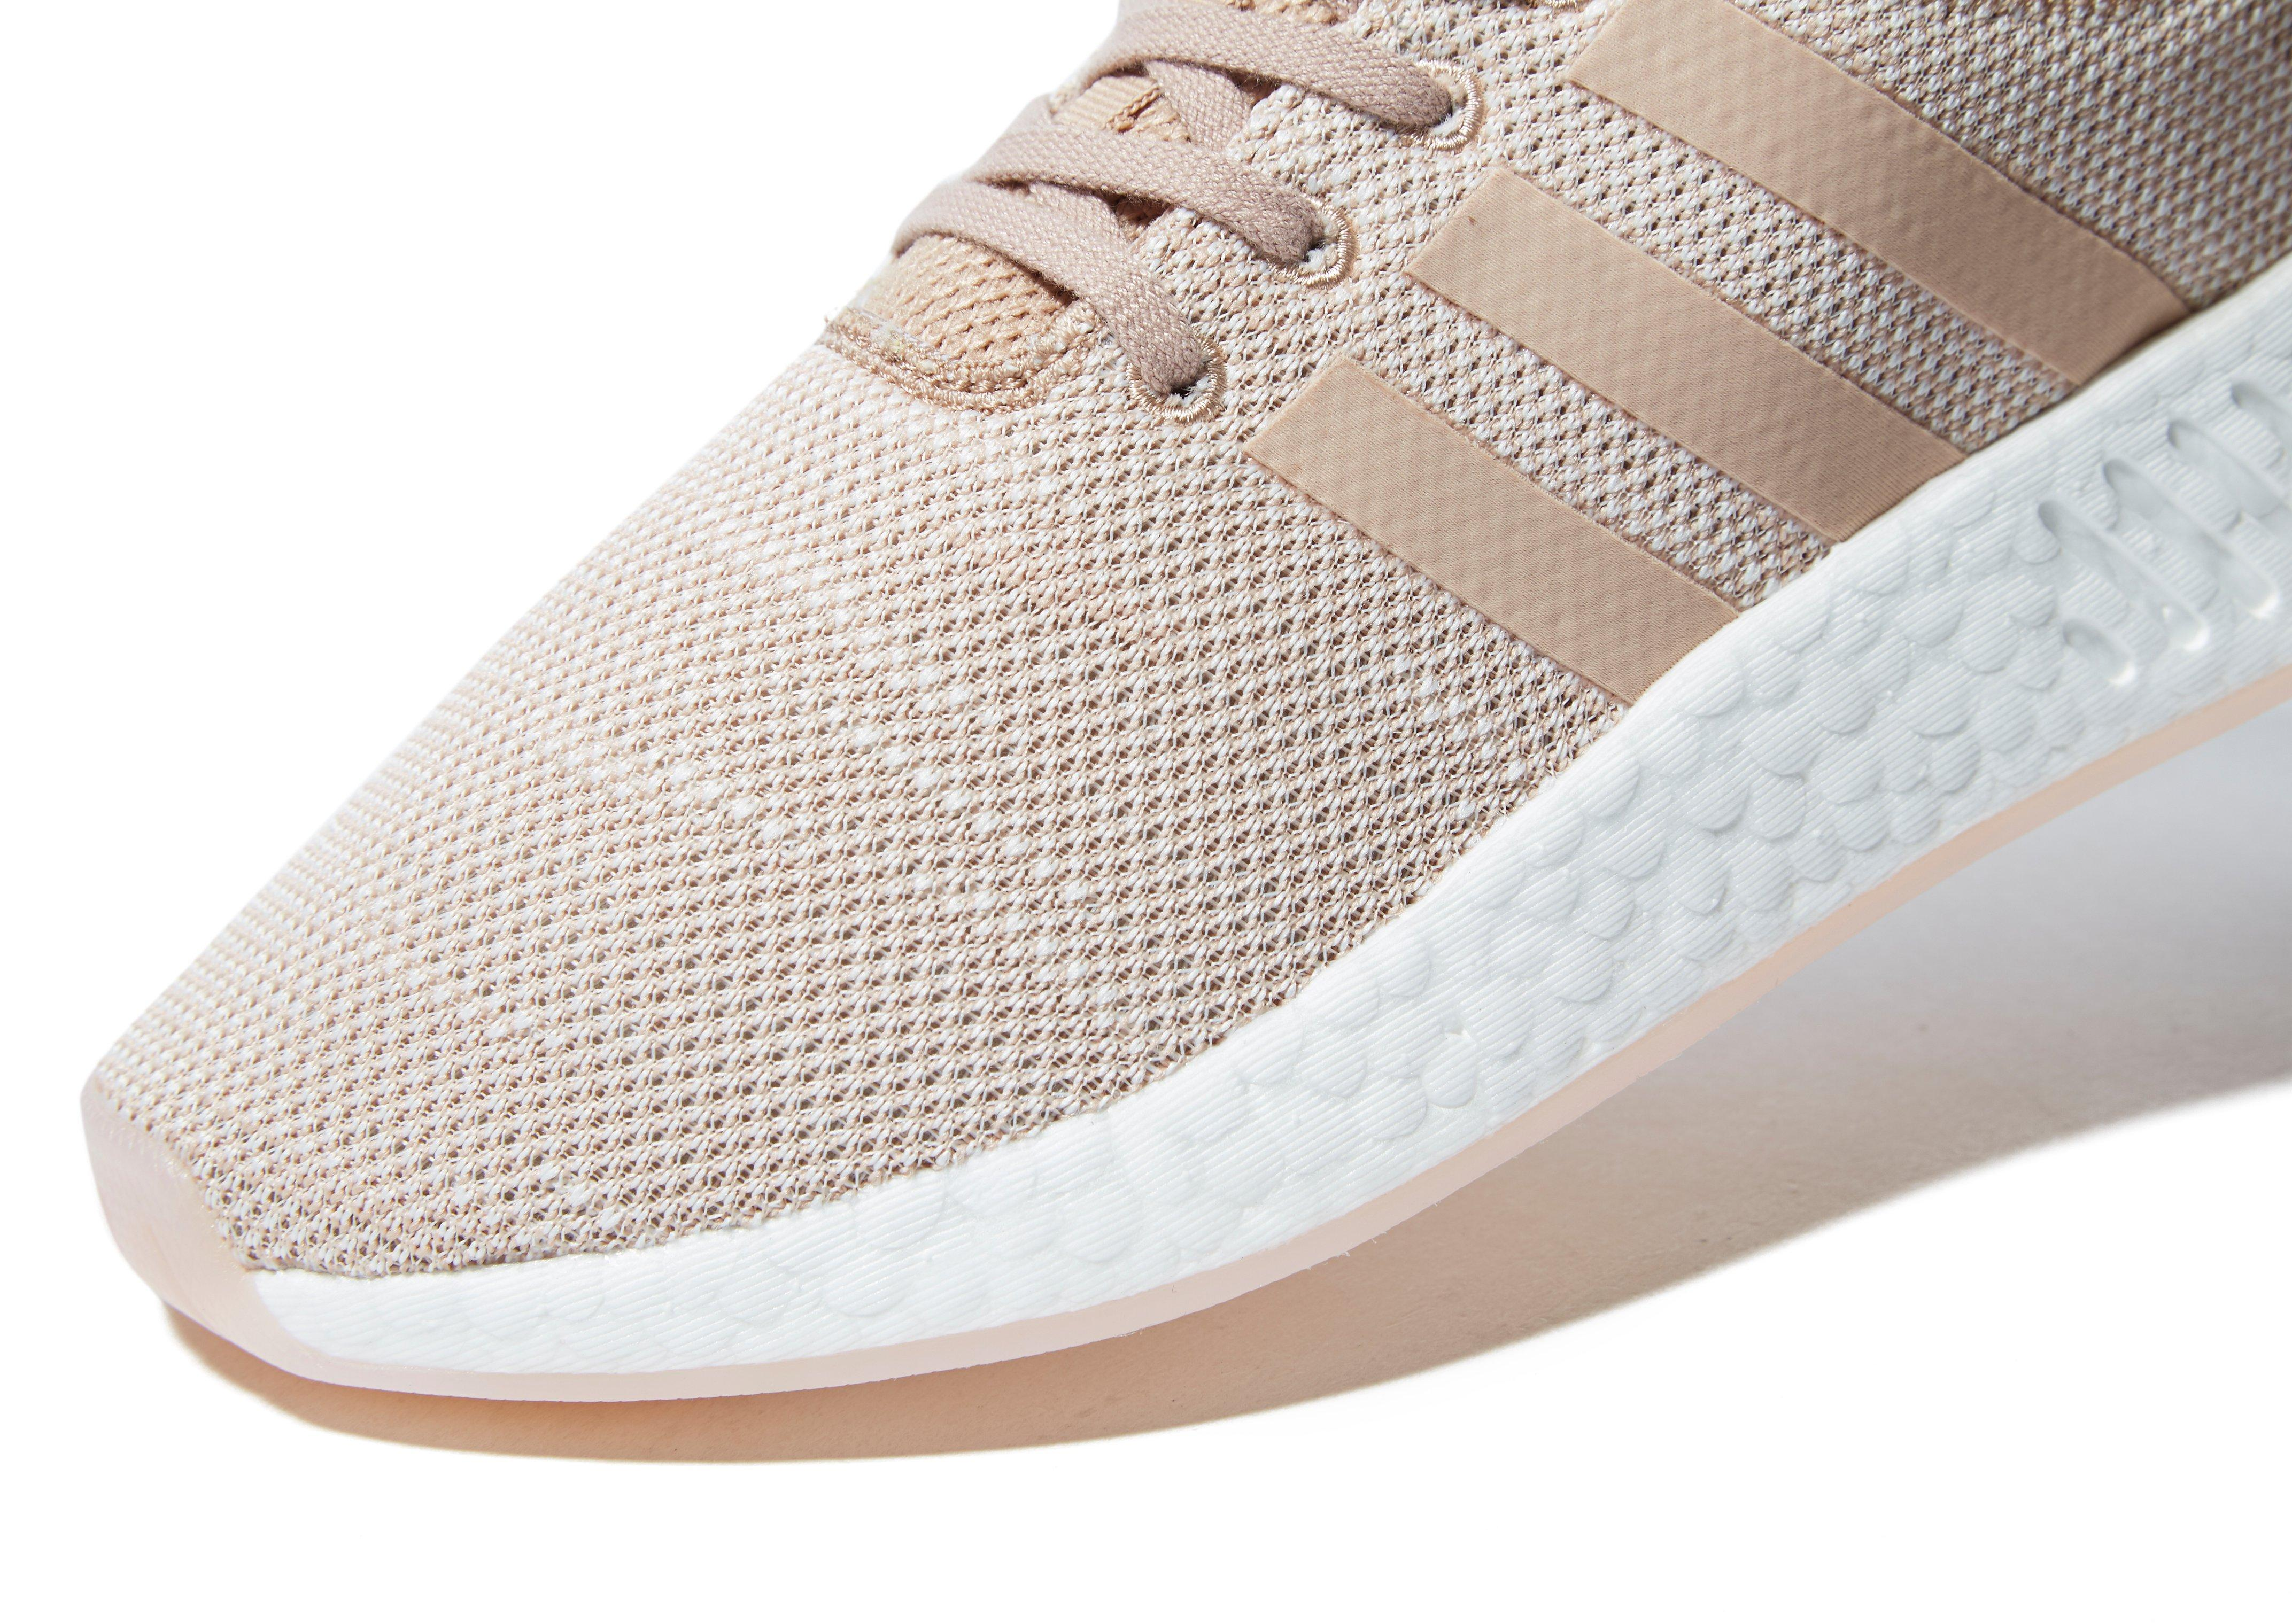 adidas nmd femme jd - (categoryid=21) - Cheap price - Up to 60 ...